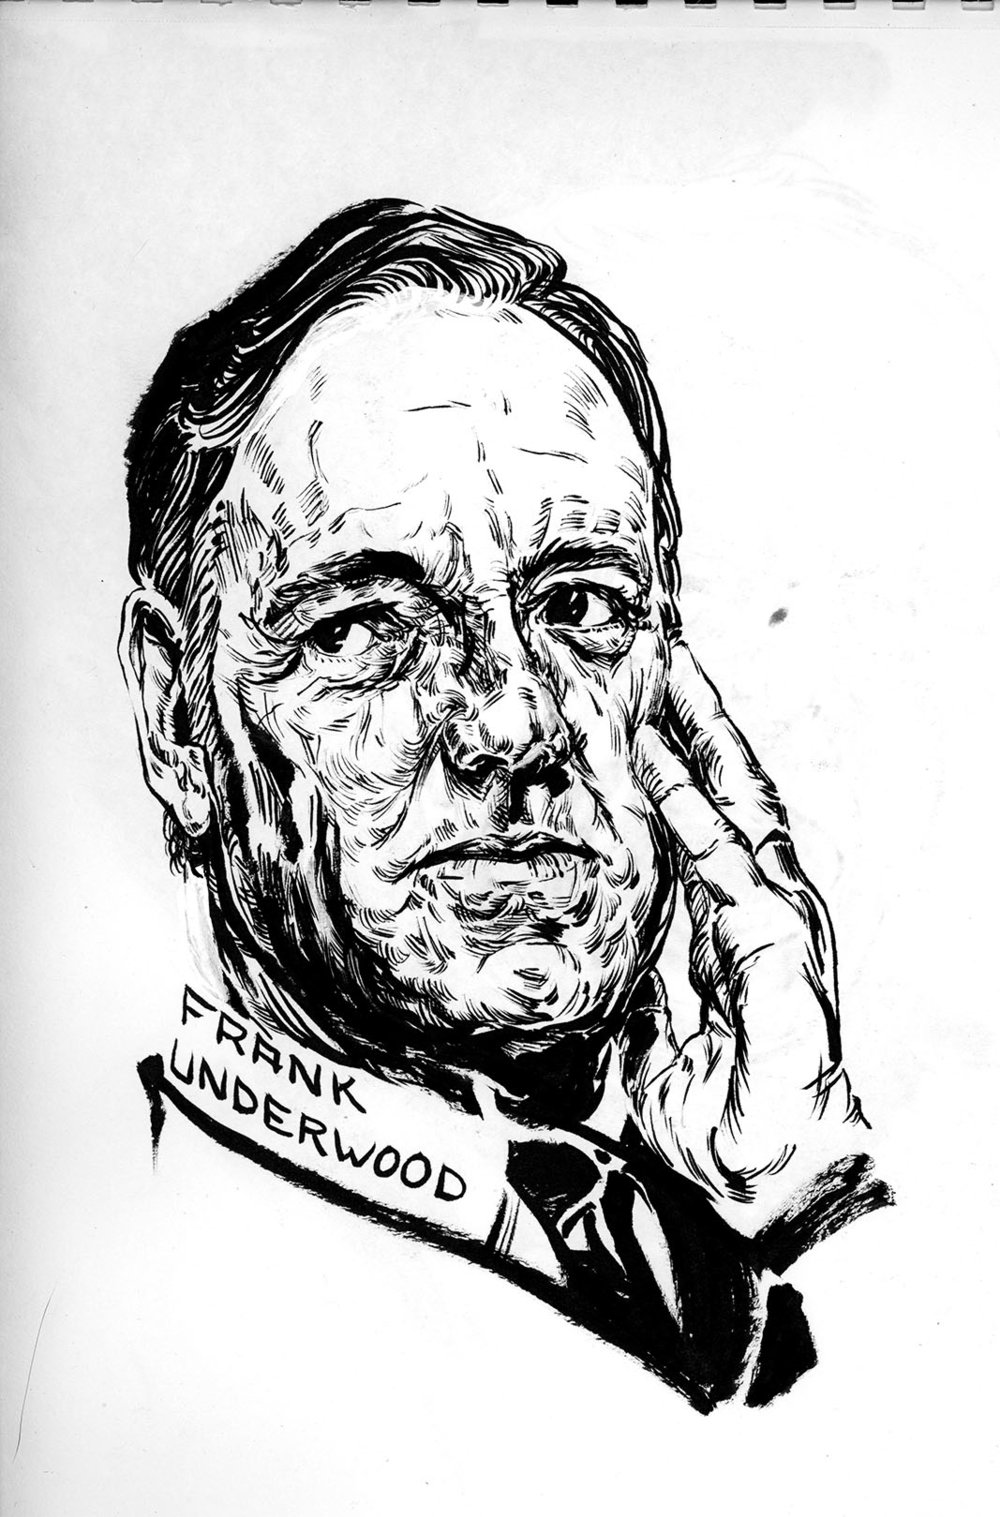 Frank_Underwood_sketch.jpg